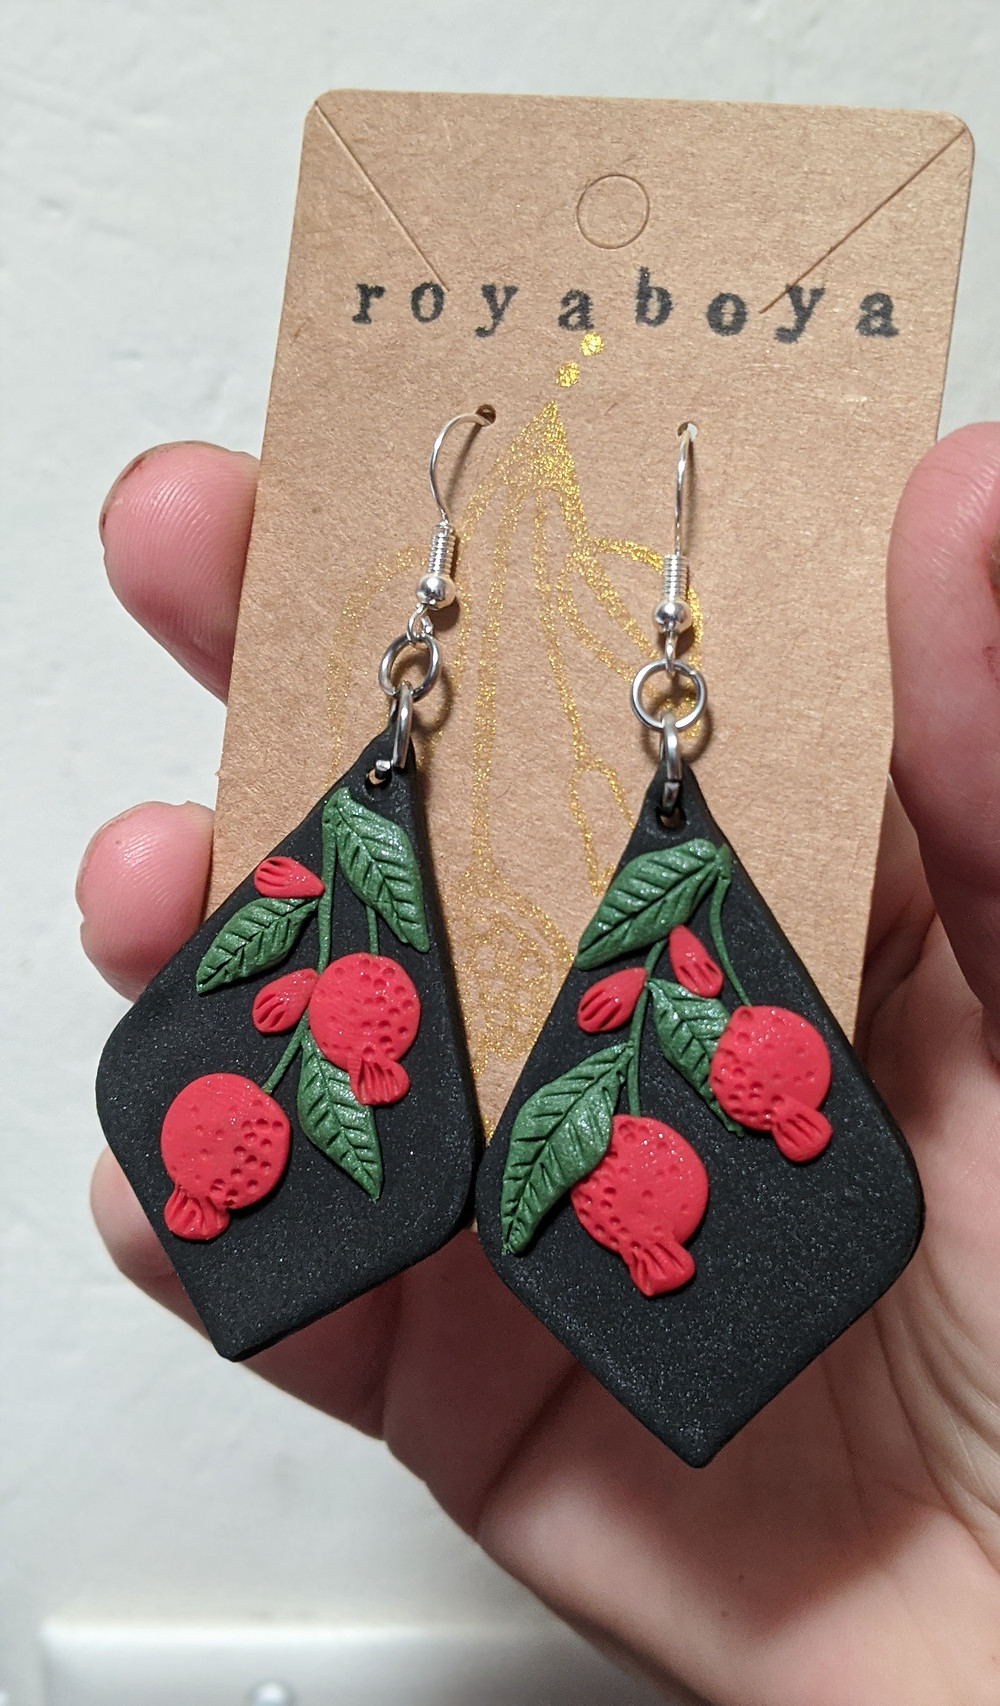 hand holding handmsde clay earrings that are black with red pomegranates